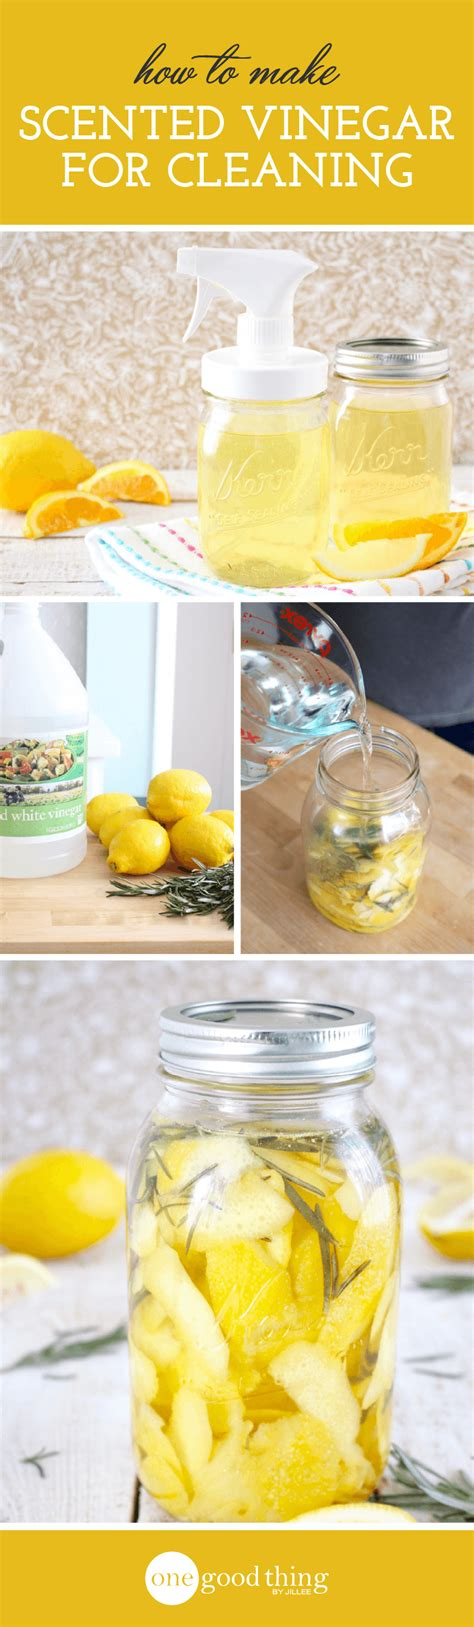 how to make scented how to make scented cleaning vinegar one thing by